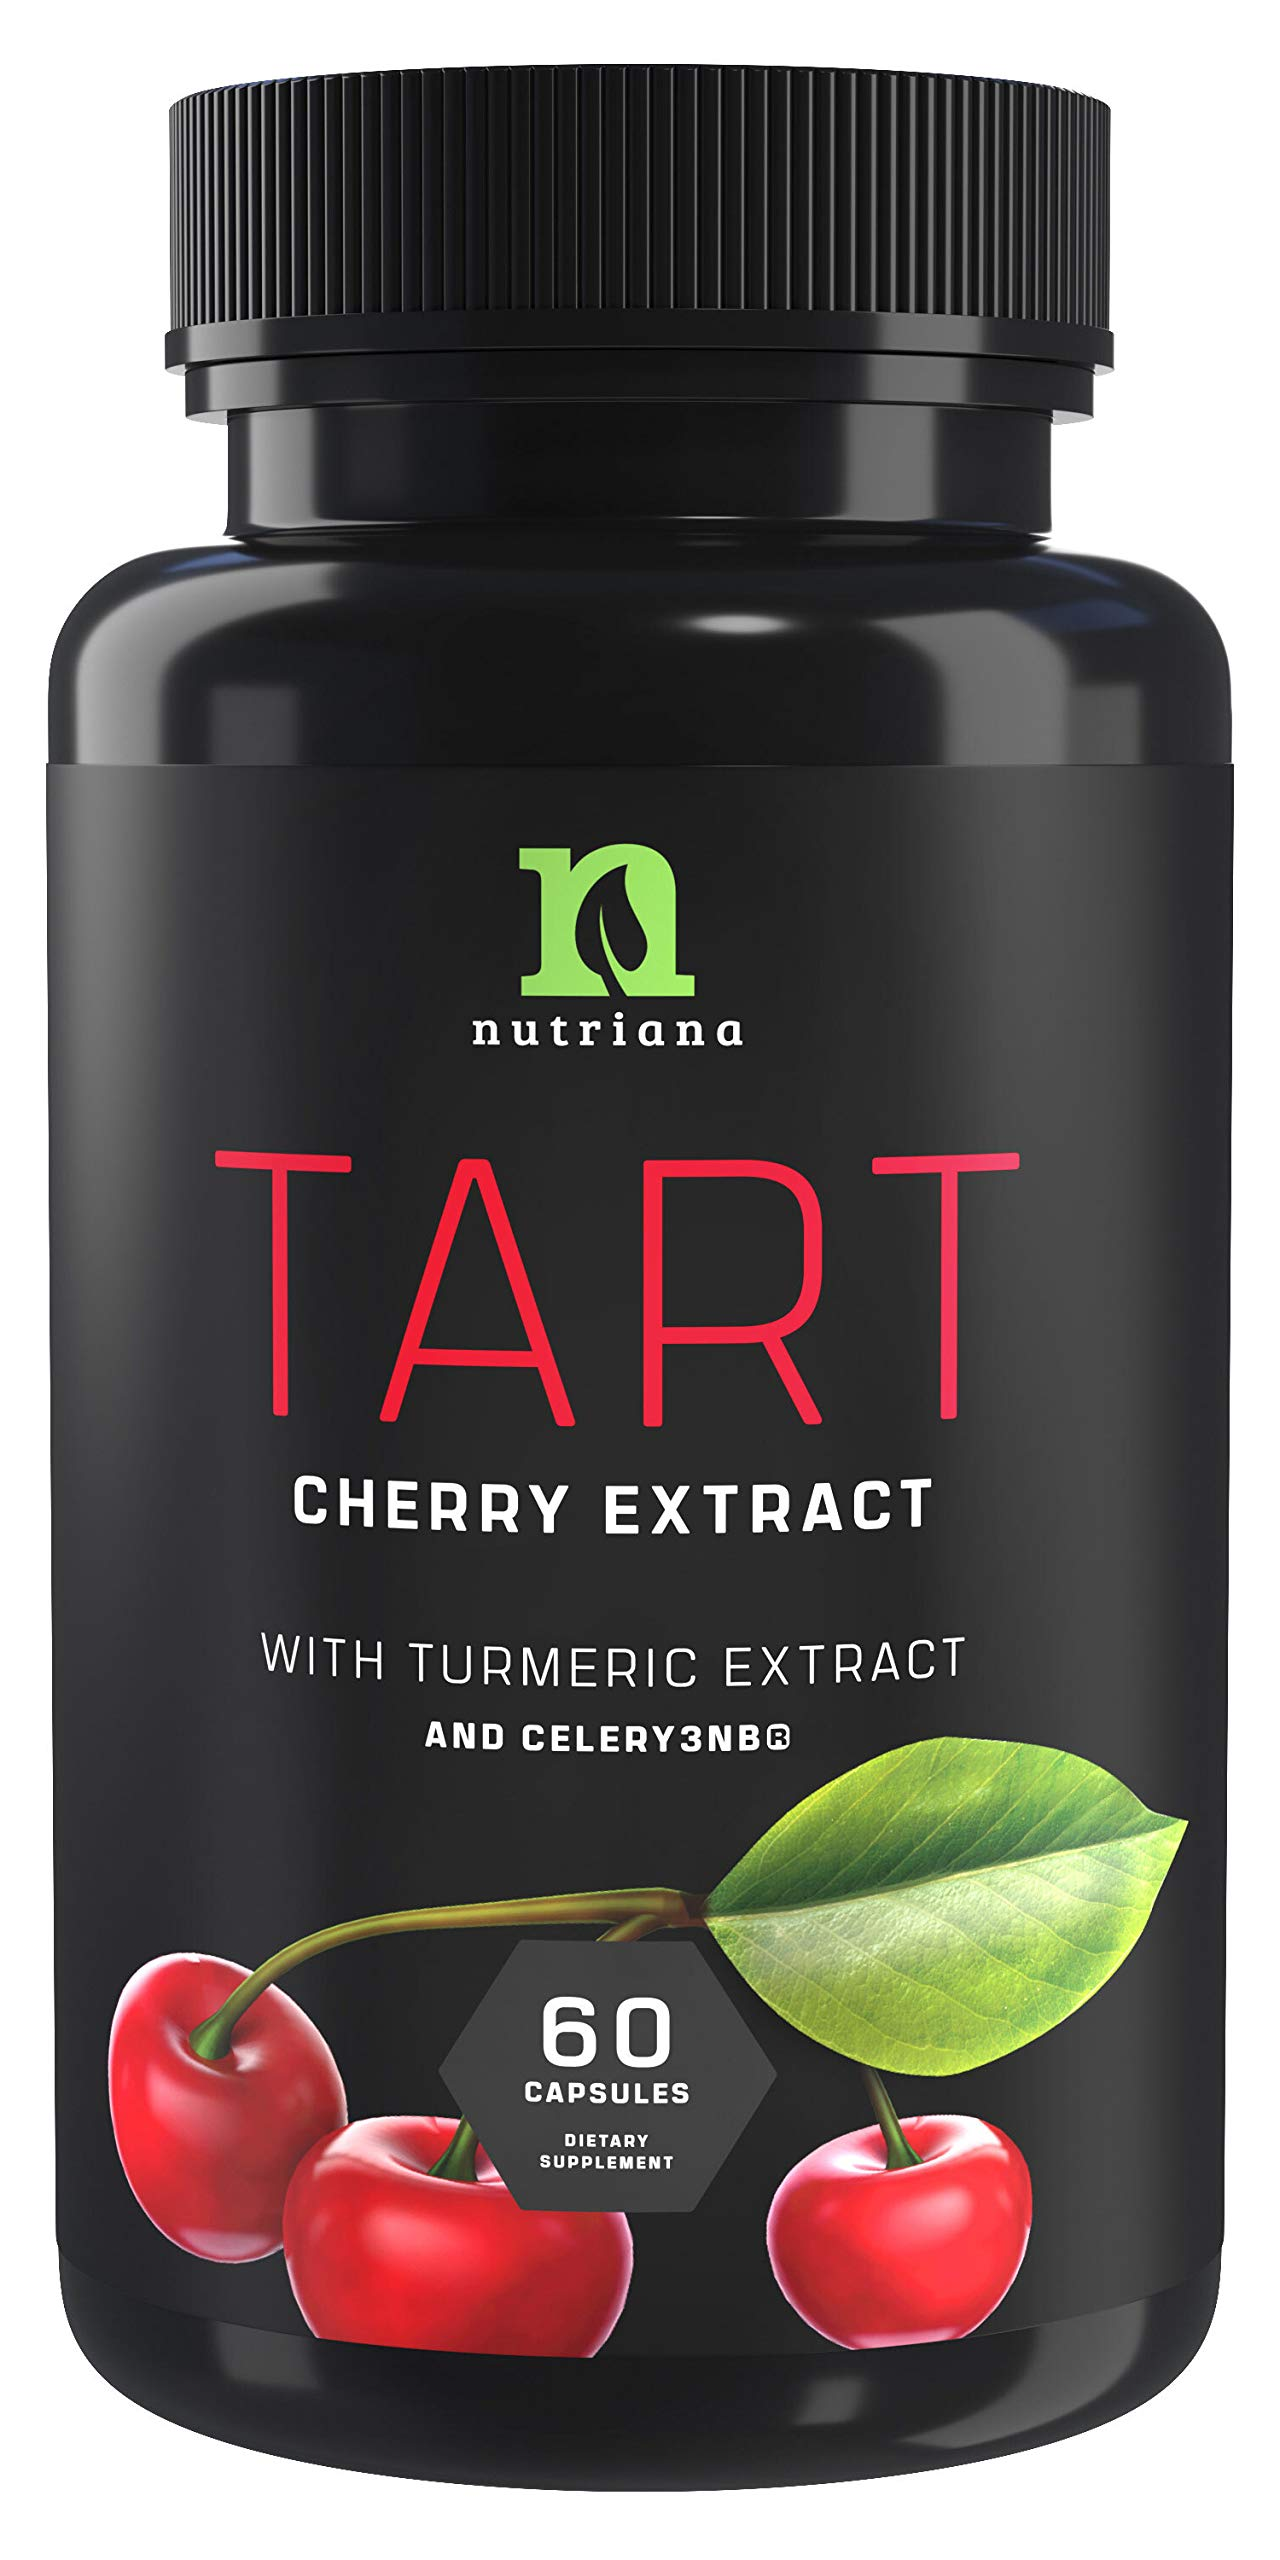 Tart Cherry Extract Capsules with Celery Seed and Turmeric 2500 mg   Uric Acid Cleanse Support, Joint Comfort and Muscle Recovery  Benefits of Tart Cherry Juice Concentrate - 60 Capsules